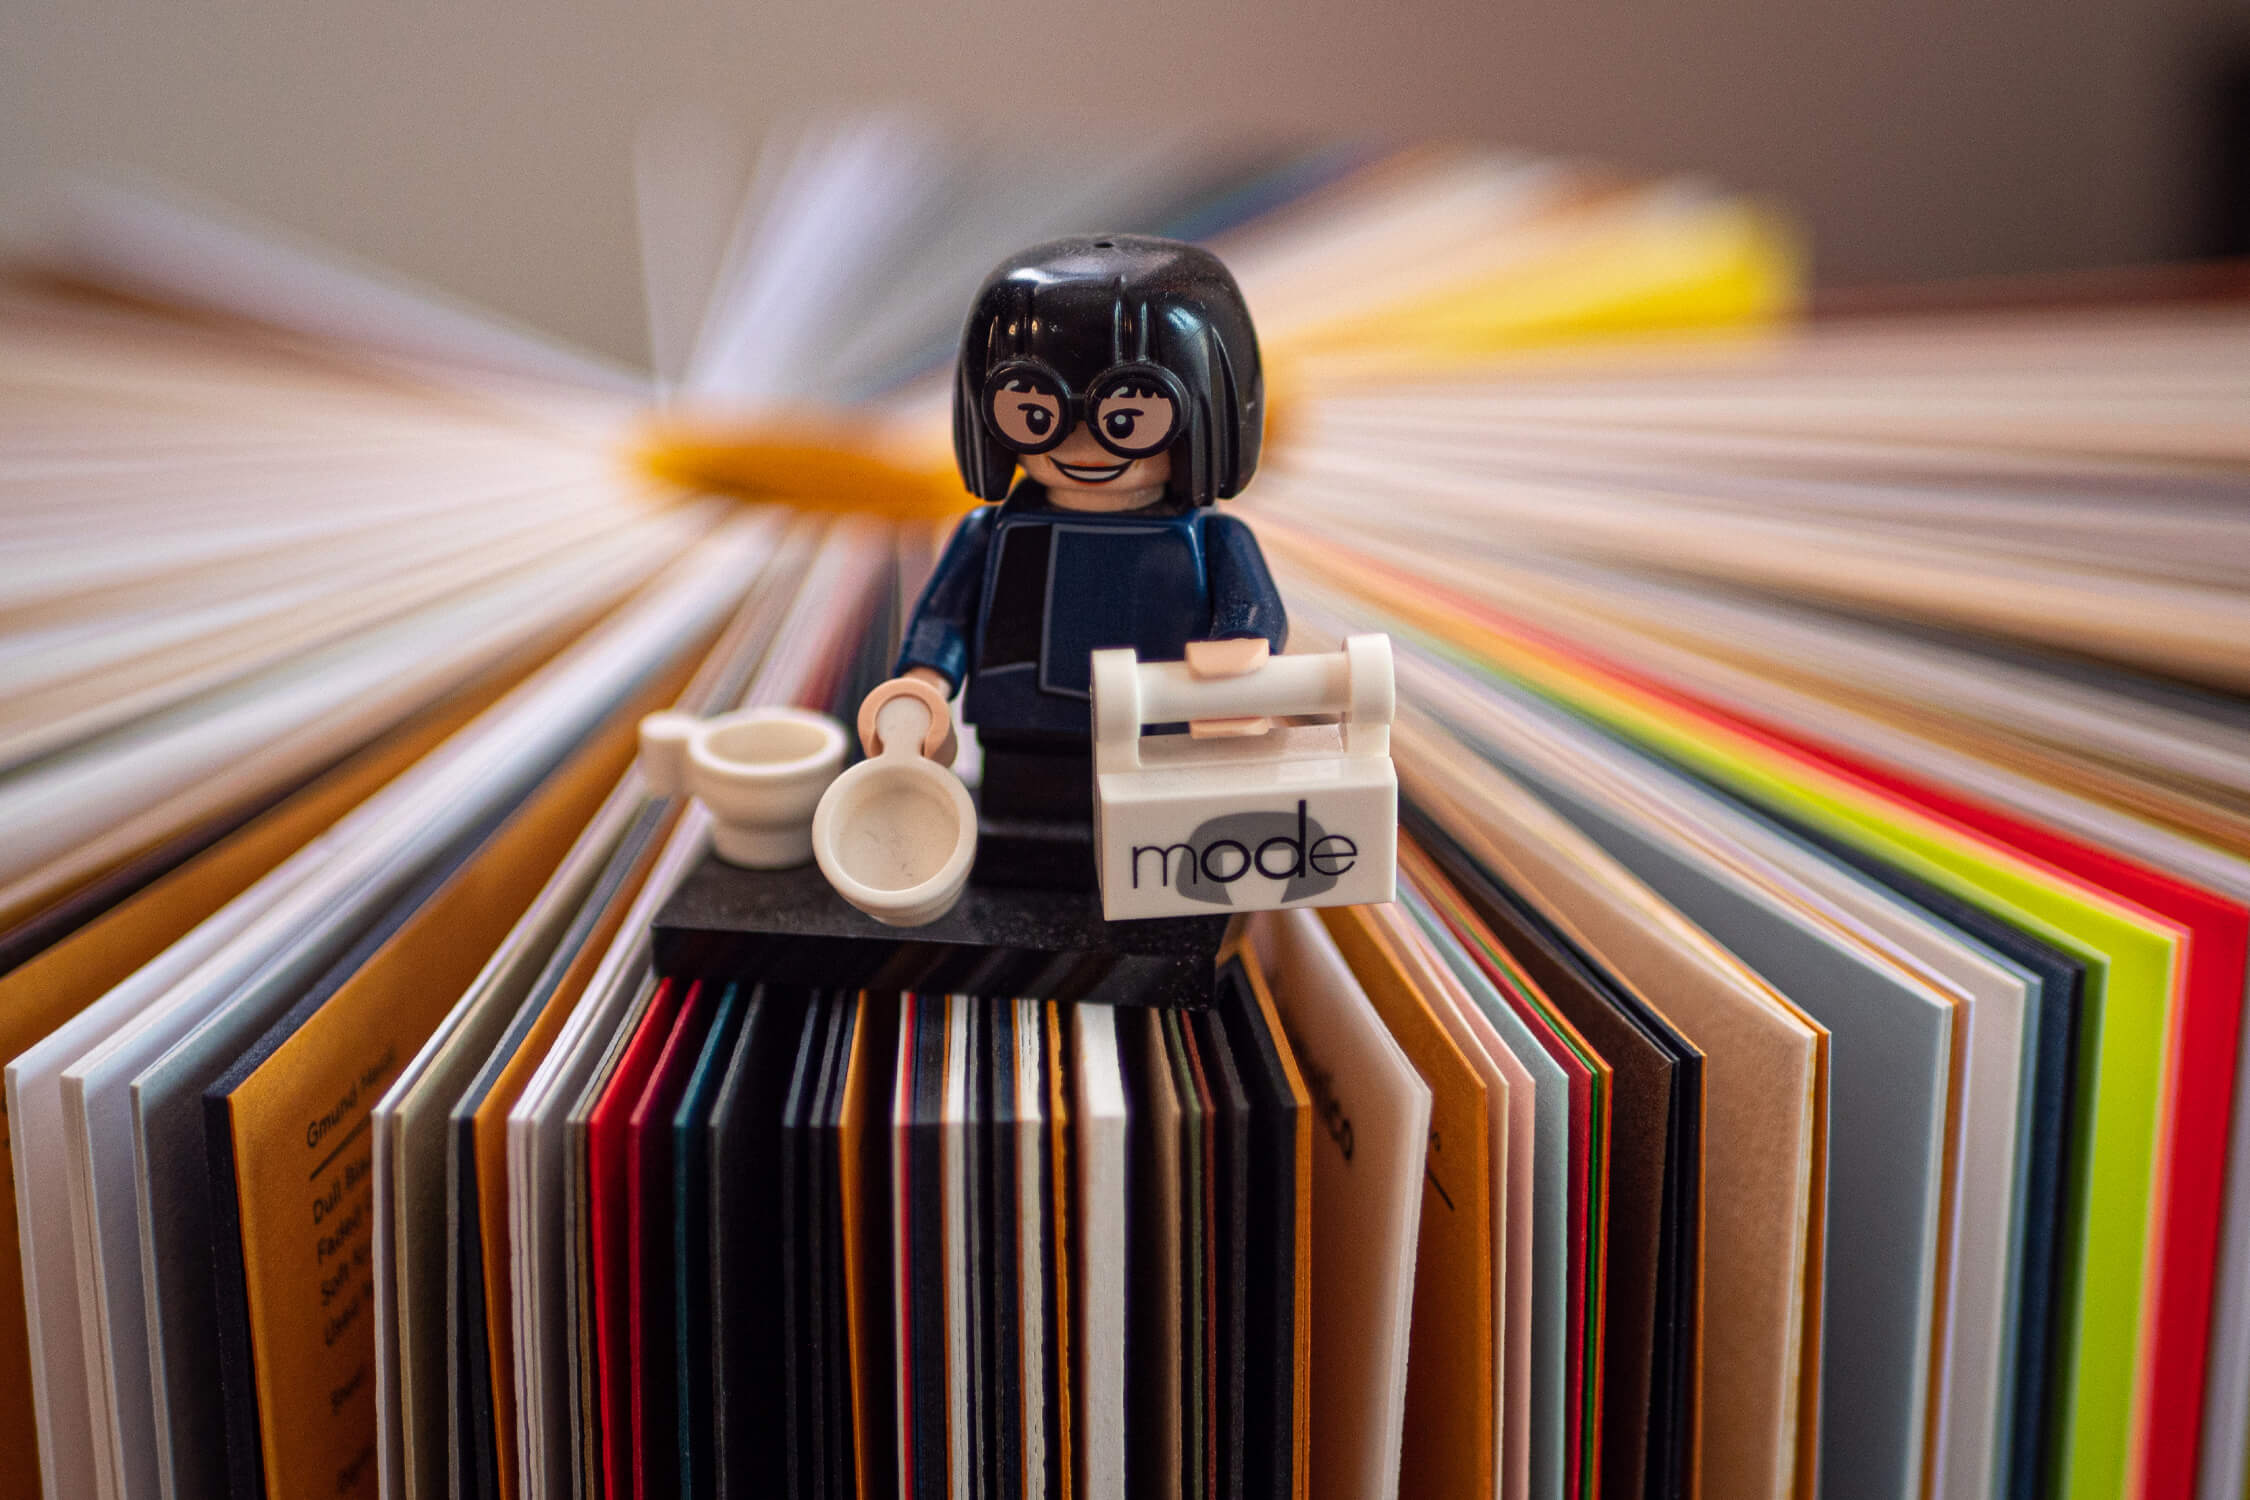 A lego figure standing on a GF Smith paper book